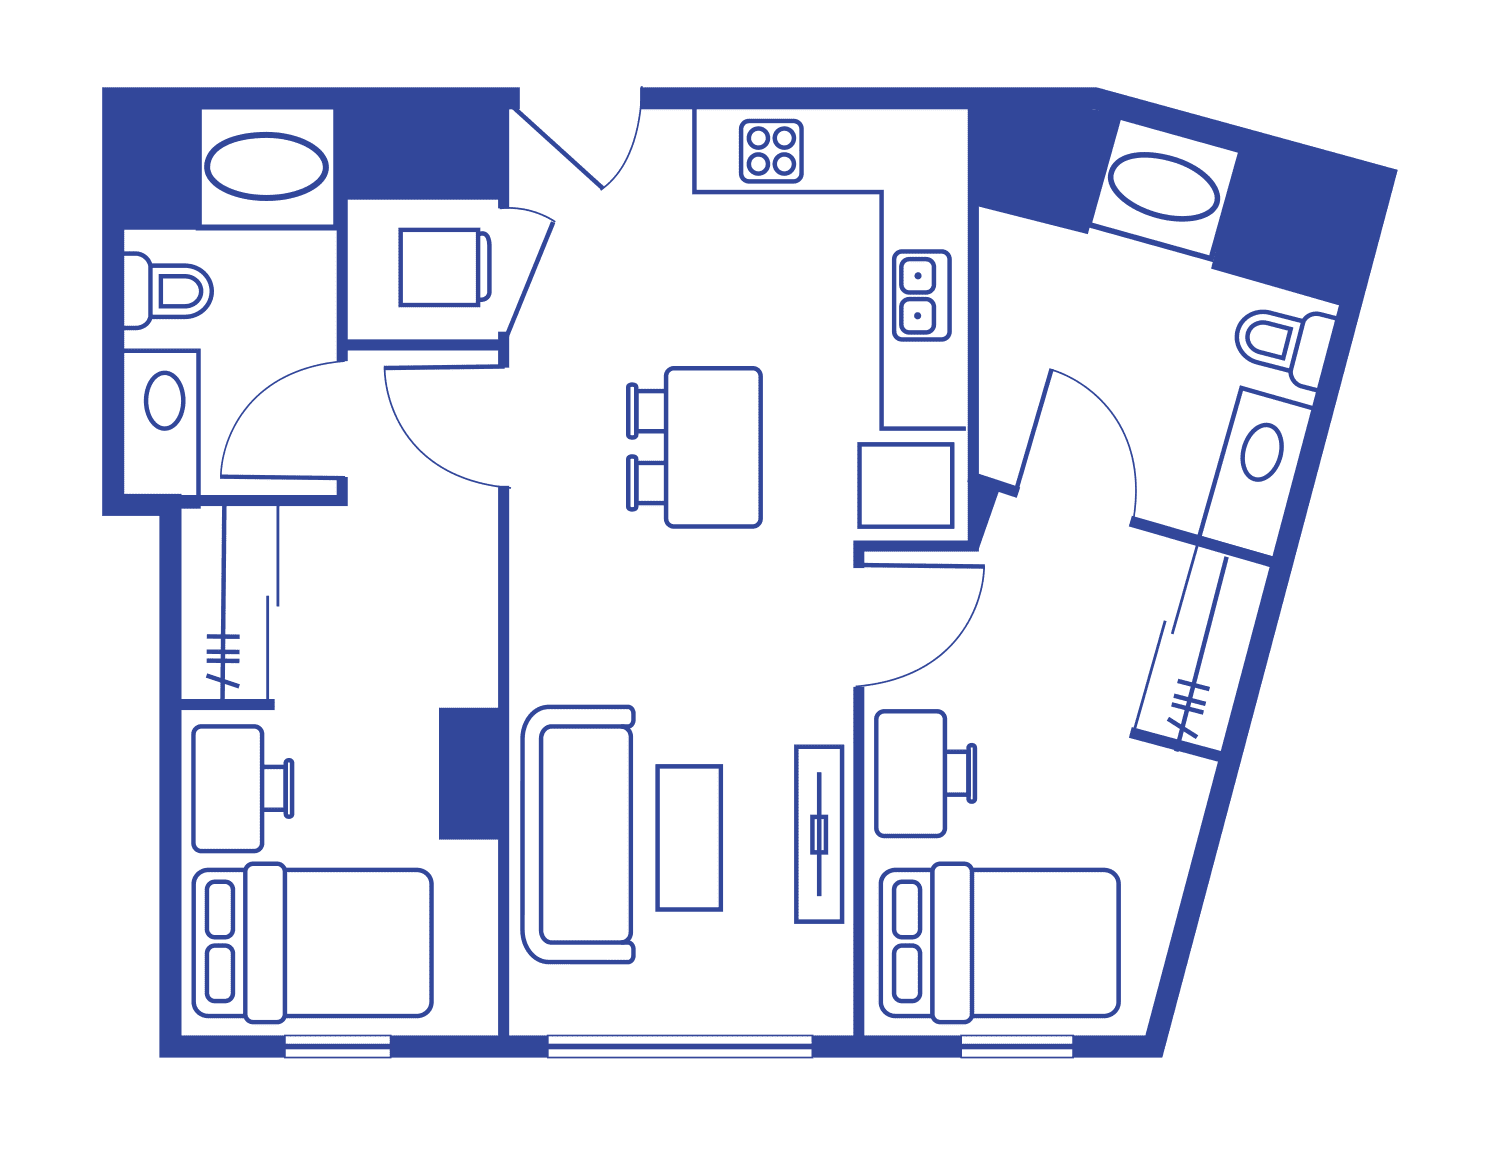 2 Bedroom 2 Bath – Lark At Kohl